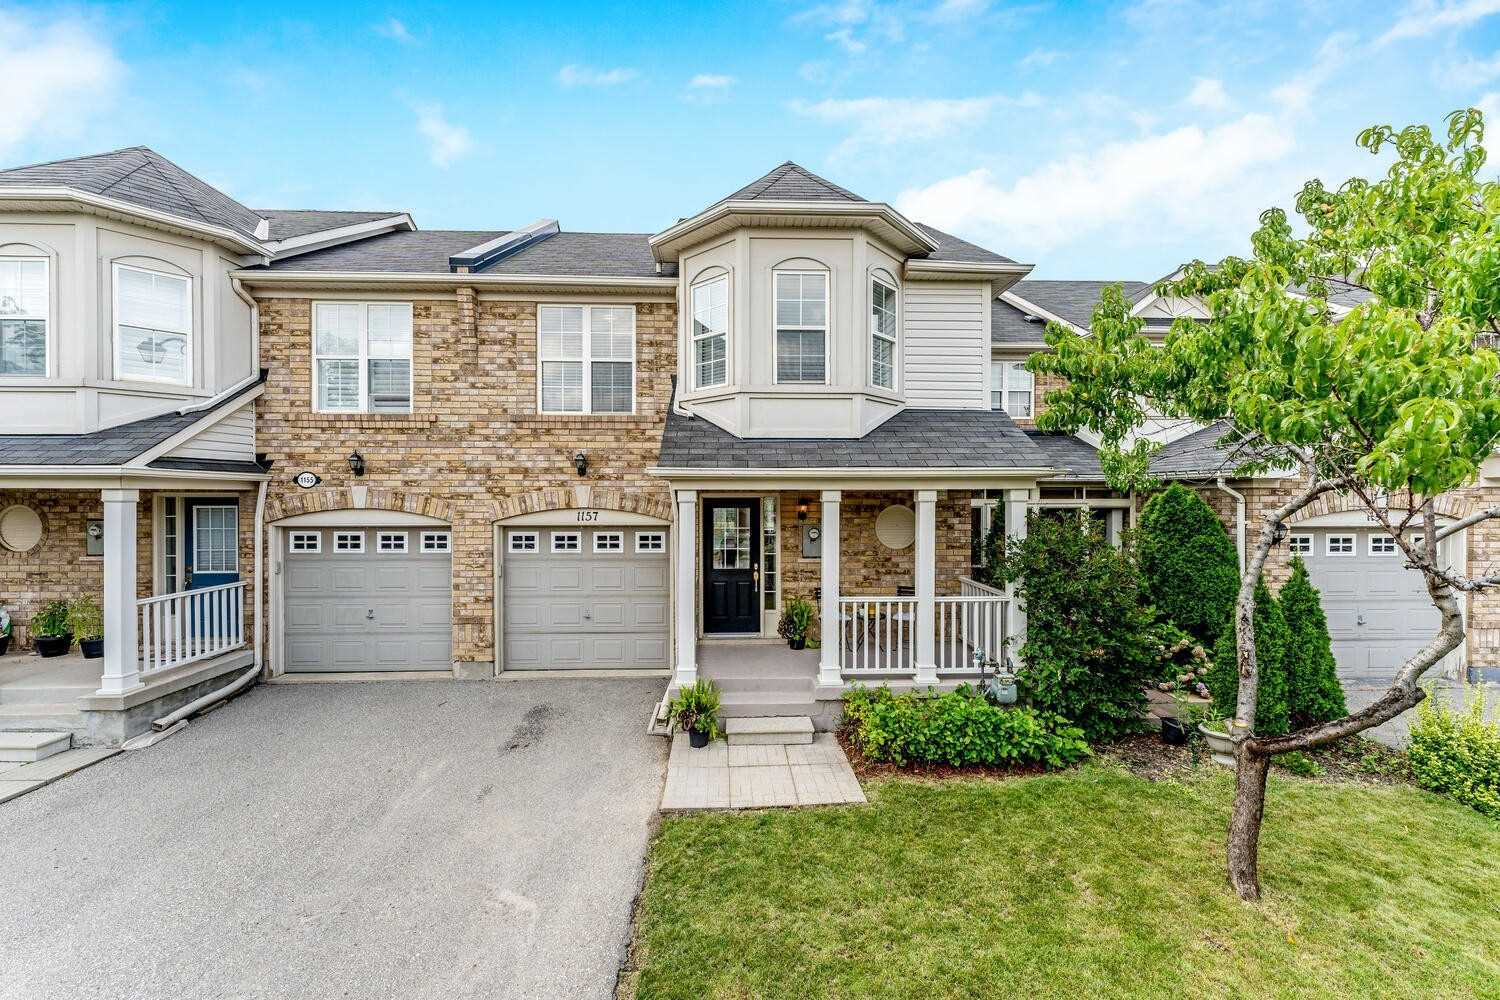 1157 Riddell Cres - Beaty Att/Row/Twnhouse for sale, 3 Bedrooms (W5324468)